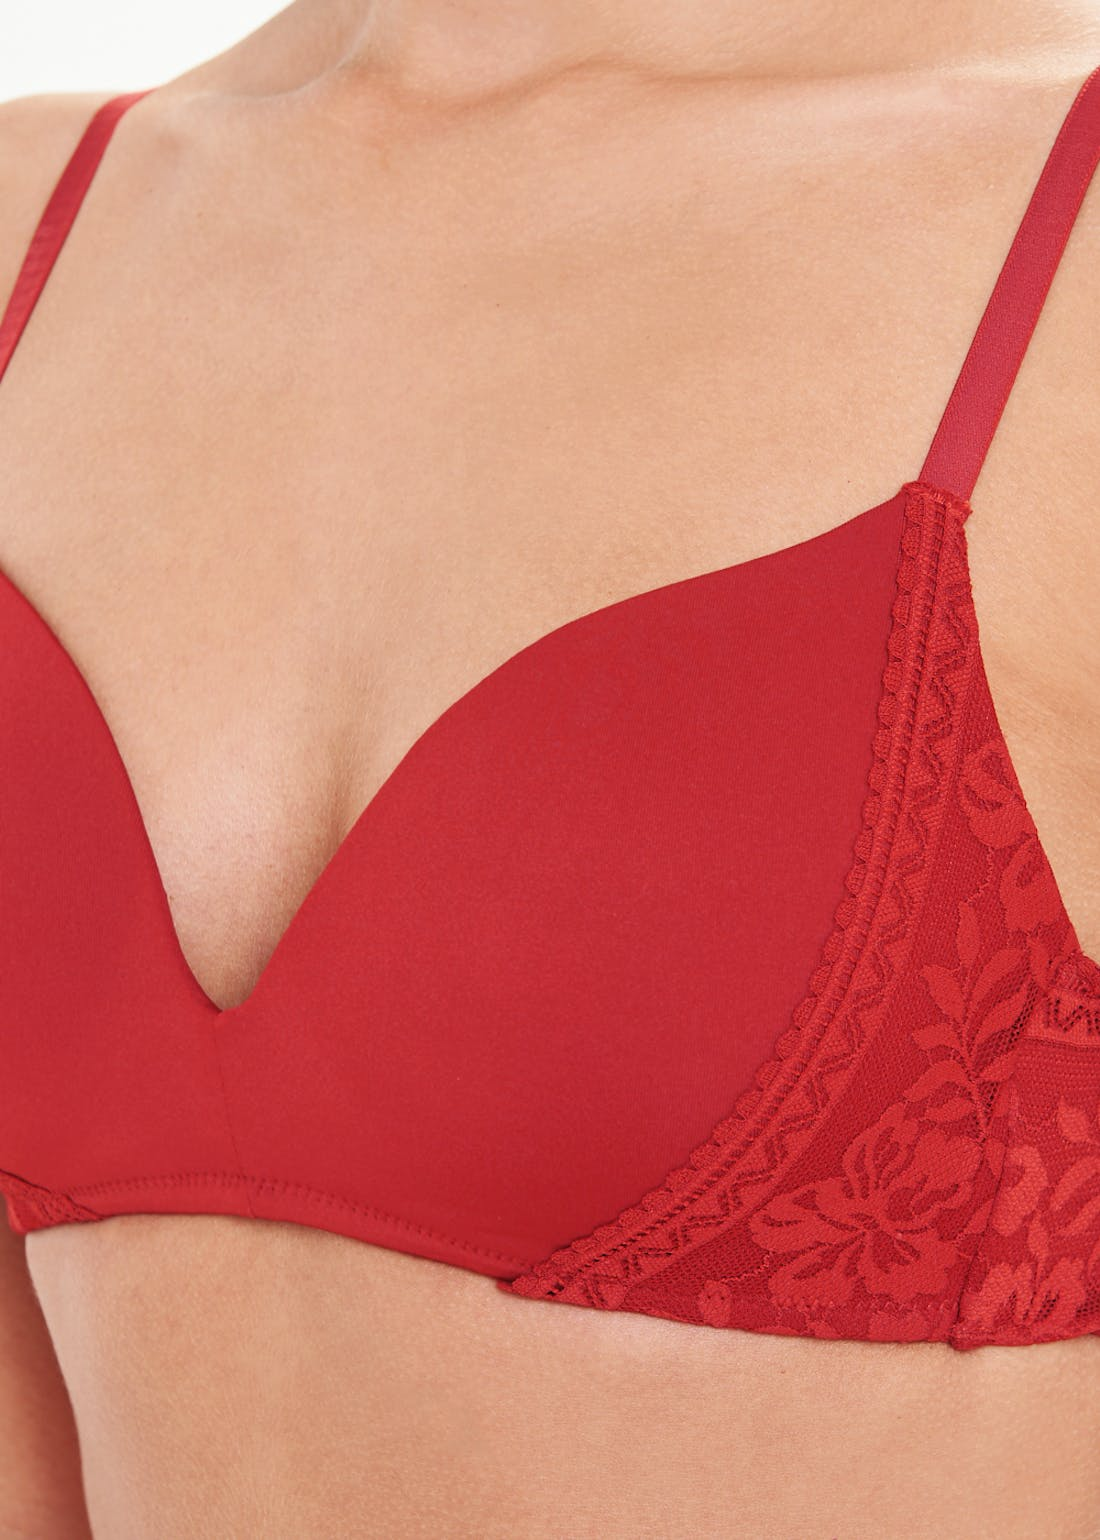 Lace Side Moulded Non-Wired Bra